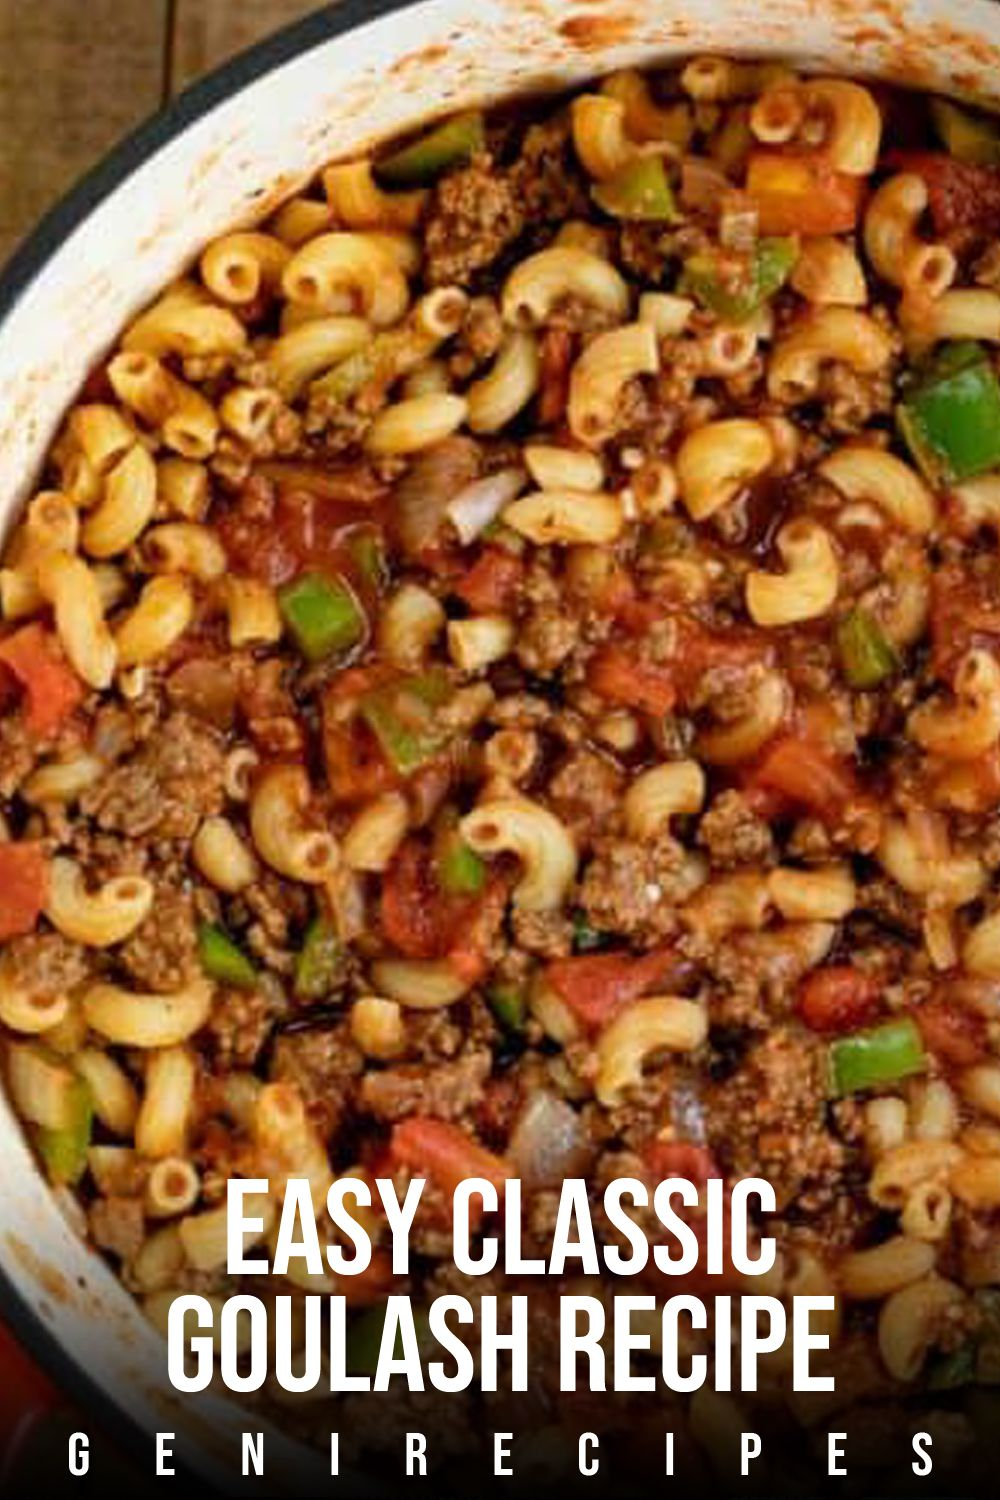 Classic Goulash Recipe In 2020 Classic Goulash Recipe Goulash Recipes Dinner With Ground Beef